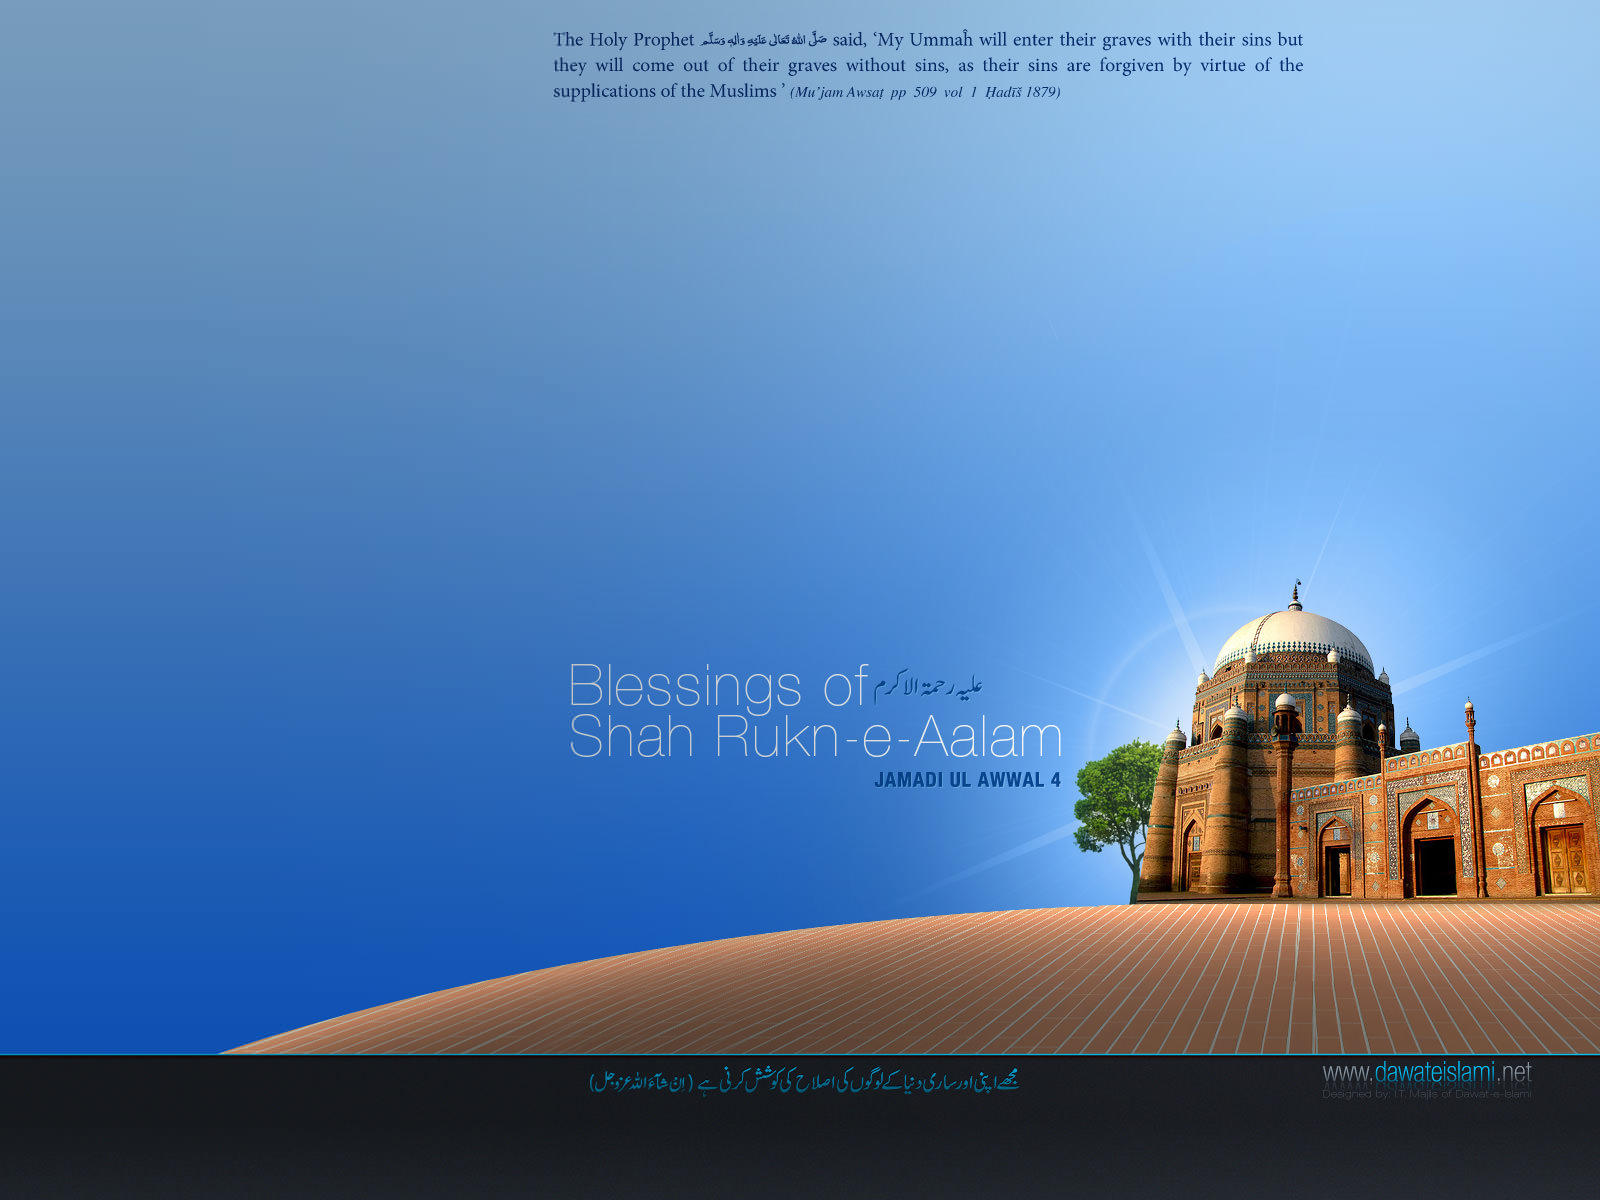 Wallpaper-Blessings Of Shah Rukn-e-Aalam